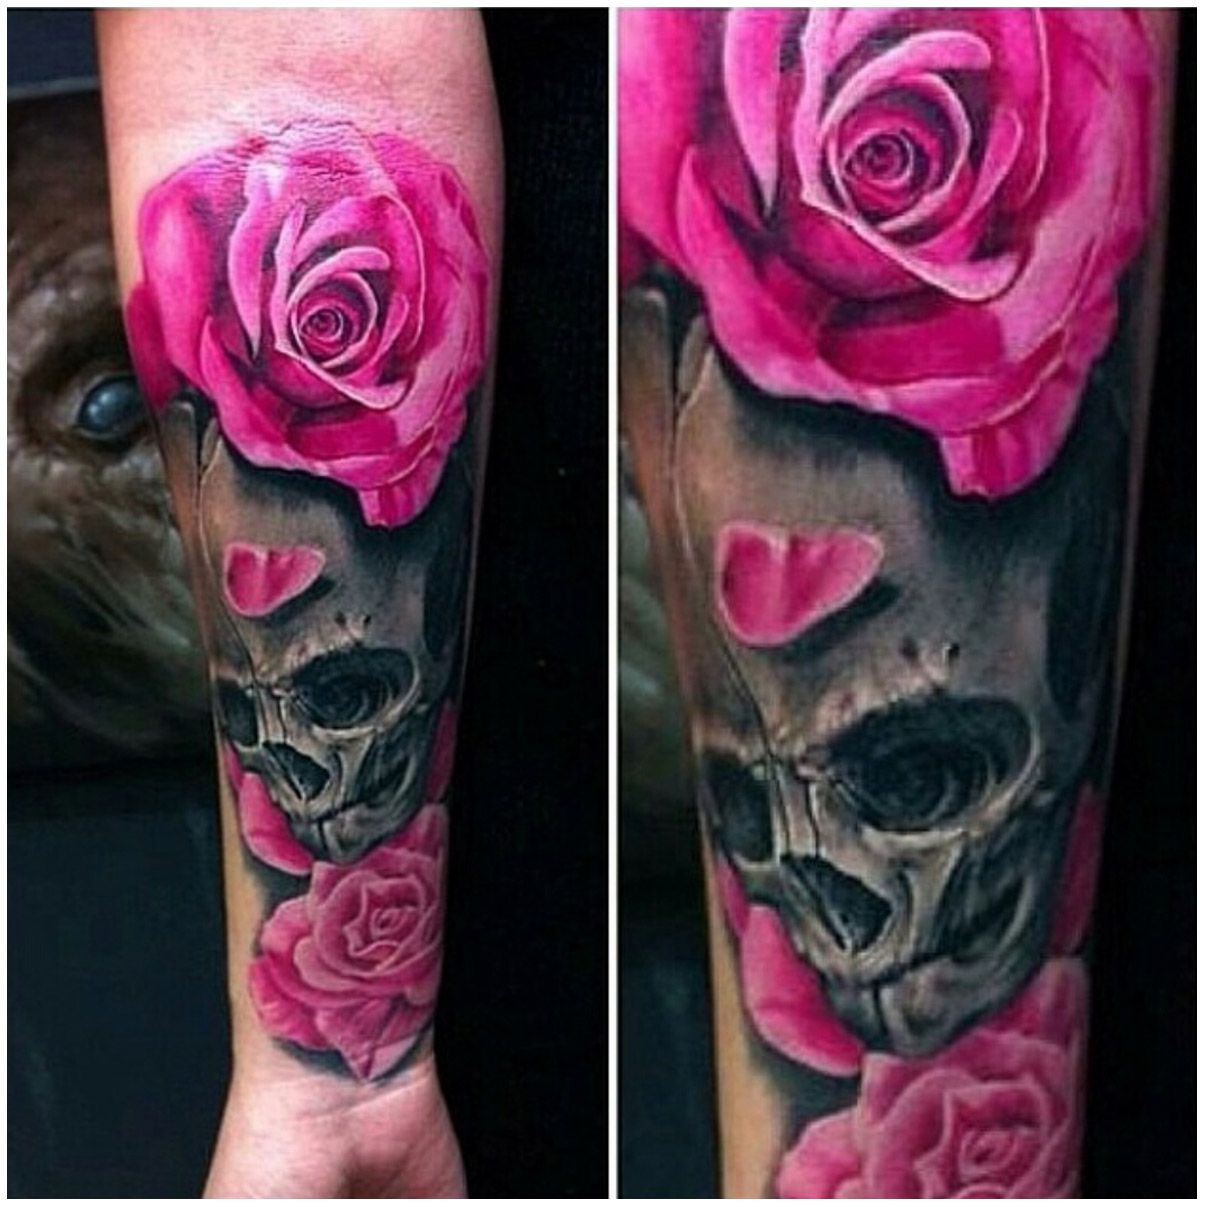 girl sugar skull tattoo Google Search Rose tattoos